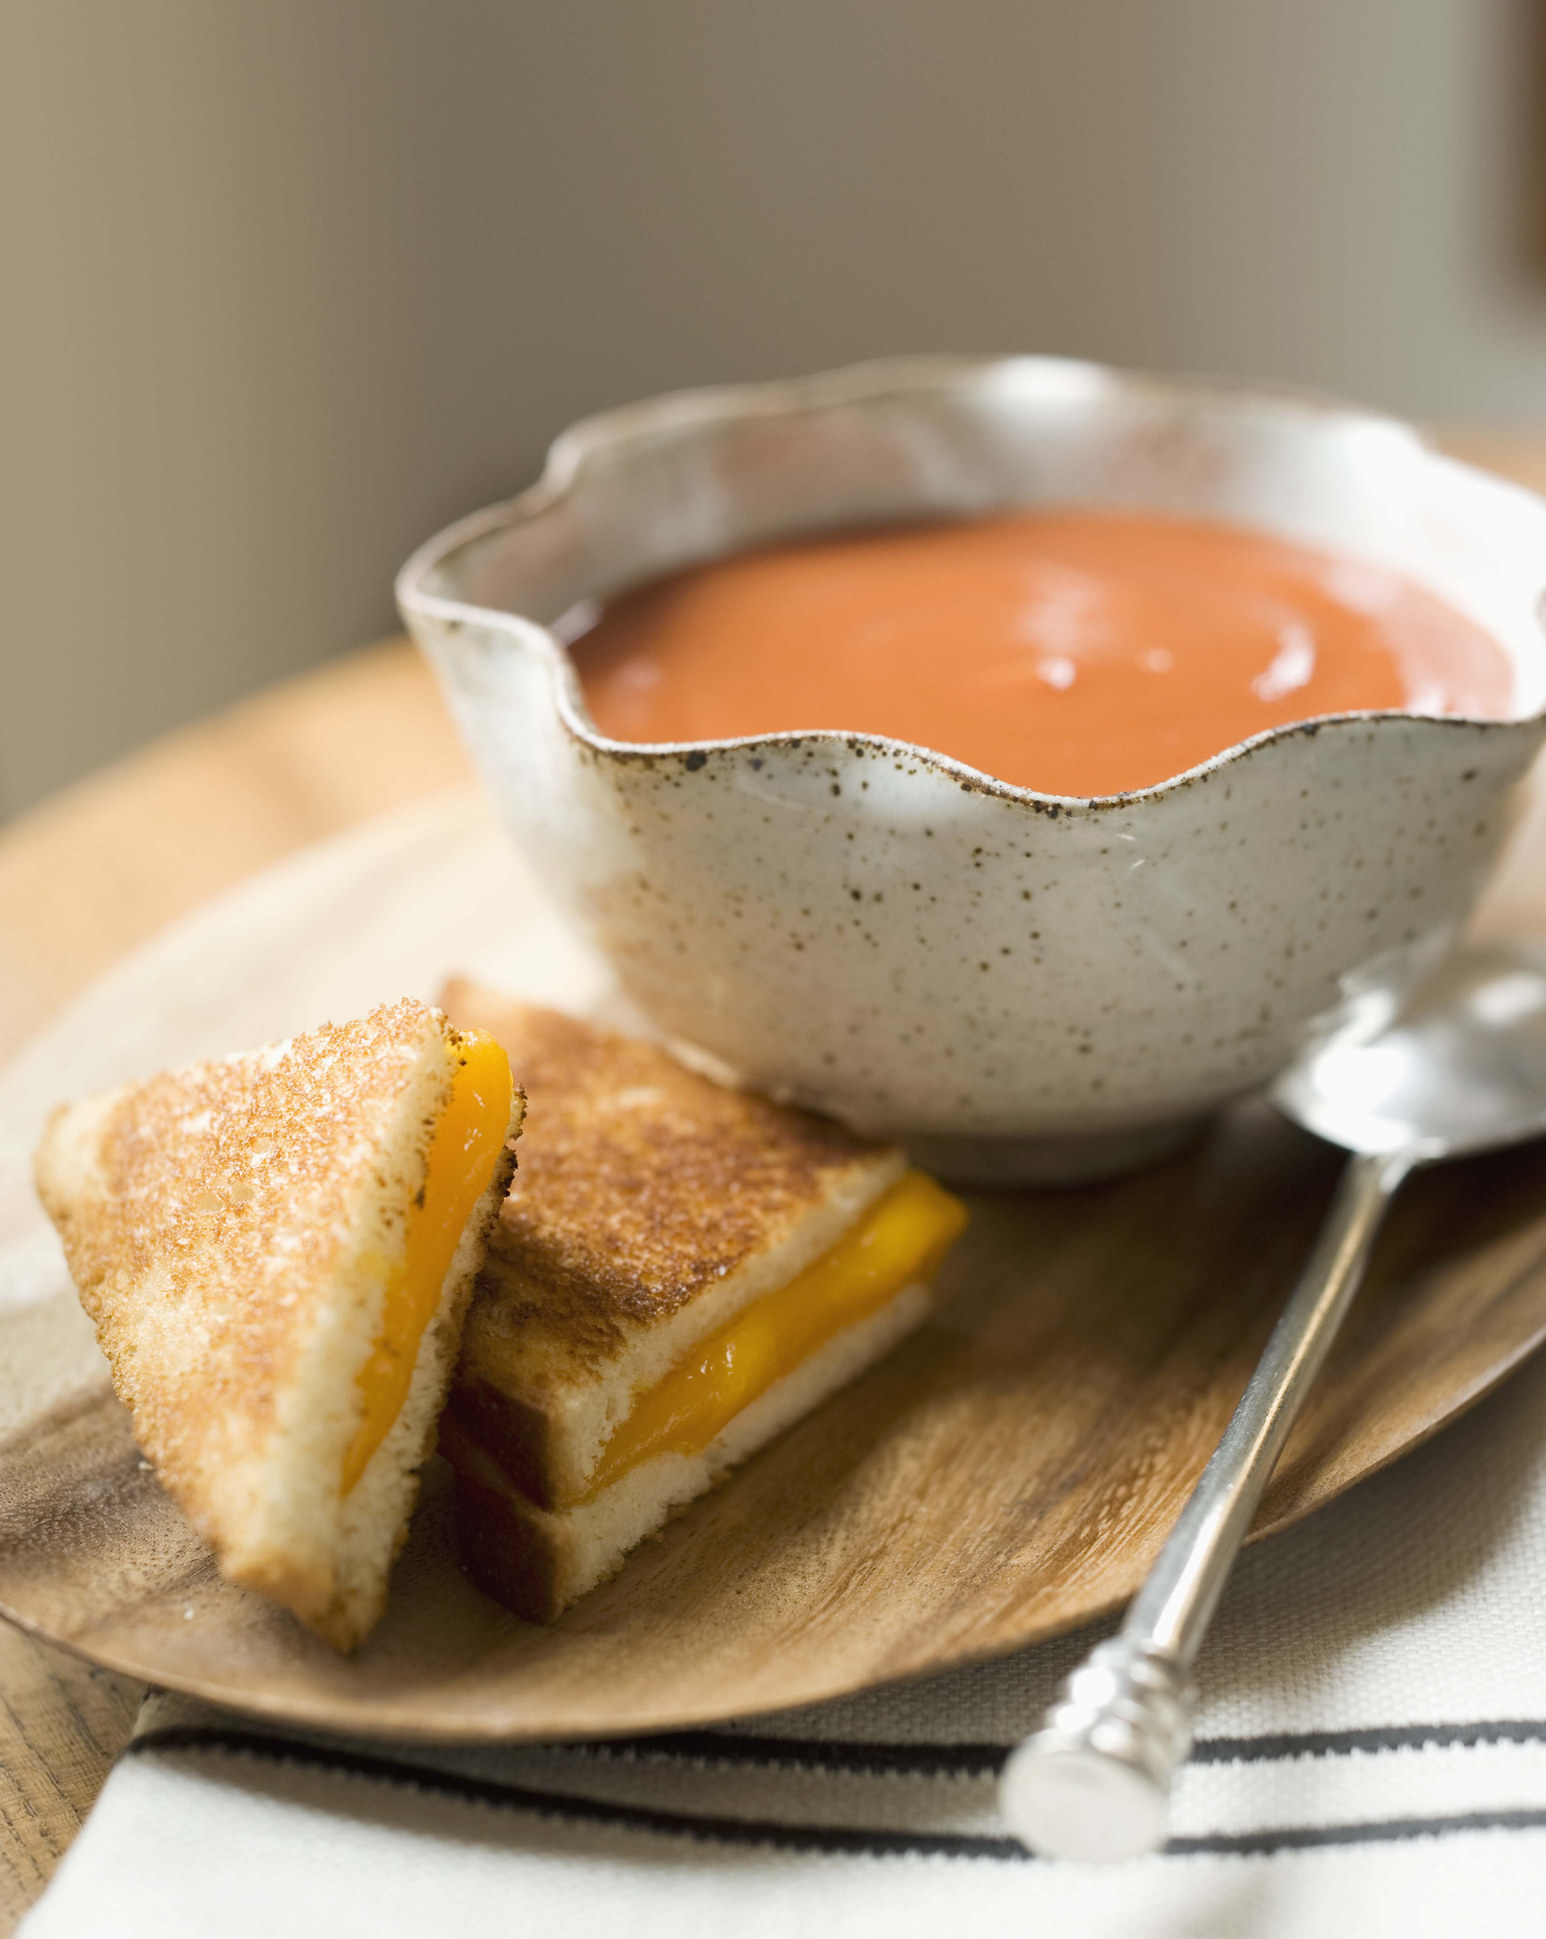 A sliced grilled cheese sandwich and a bowl of creamy tomato soup.